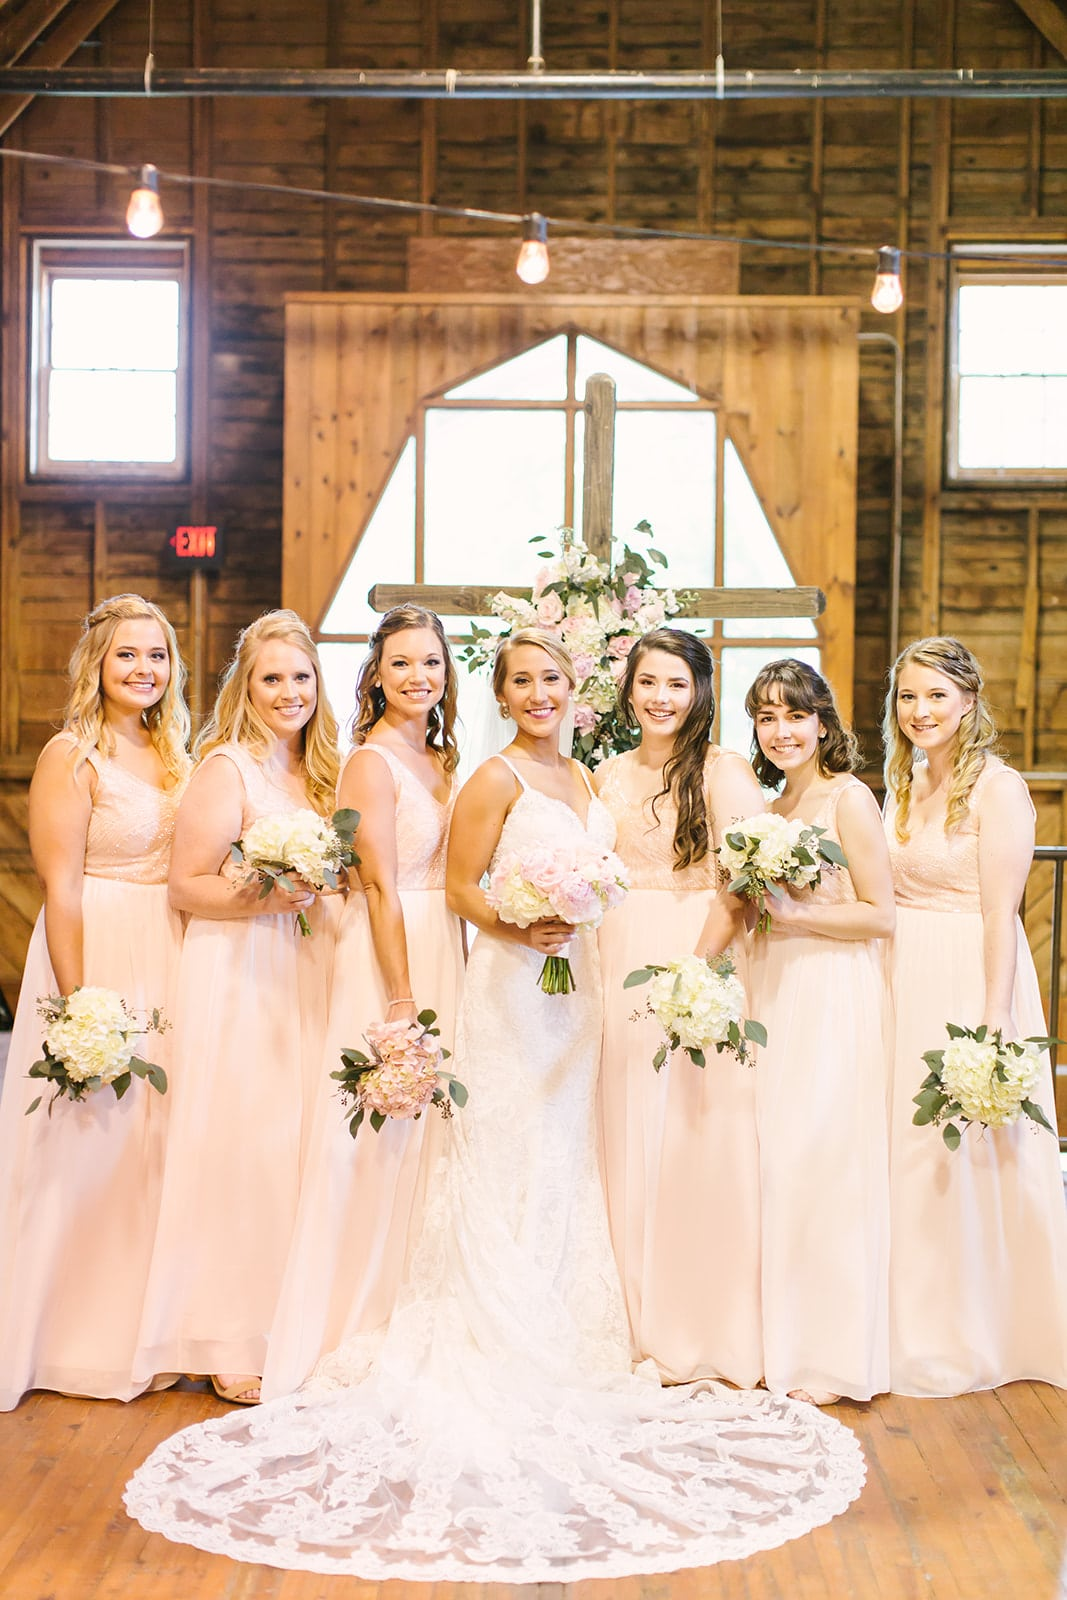 Bride poses with her bridesmaids before her ceremony at The Diary Barn image captured by Paige Ryan Photography